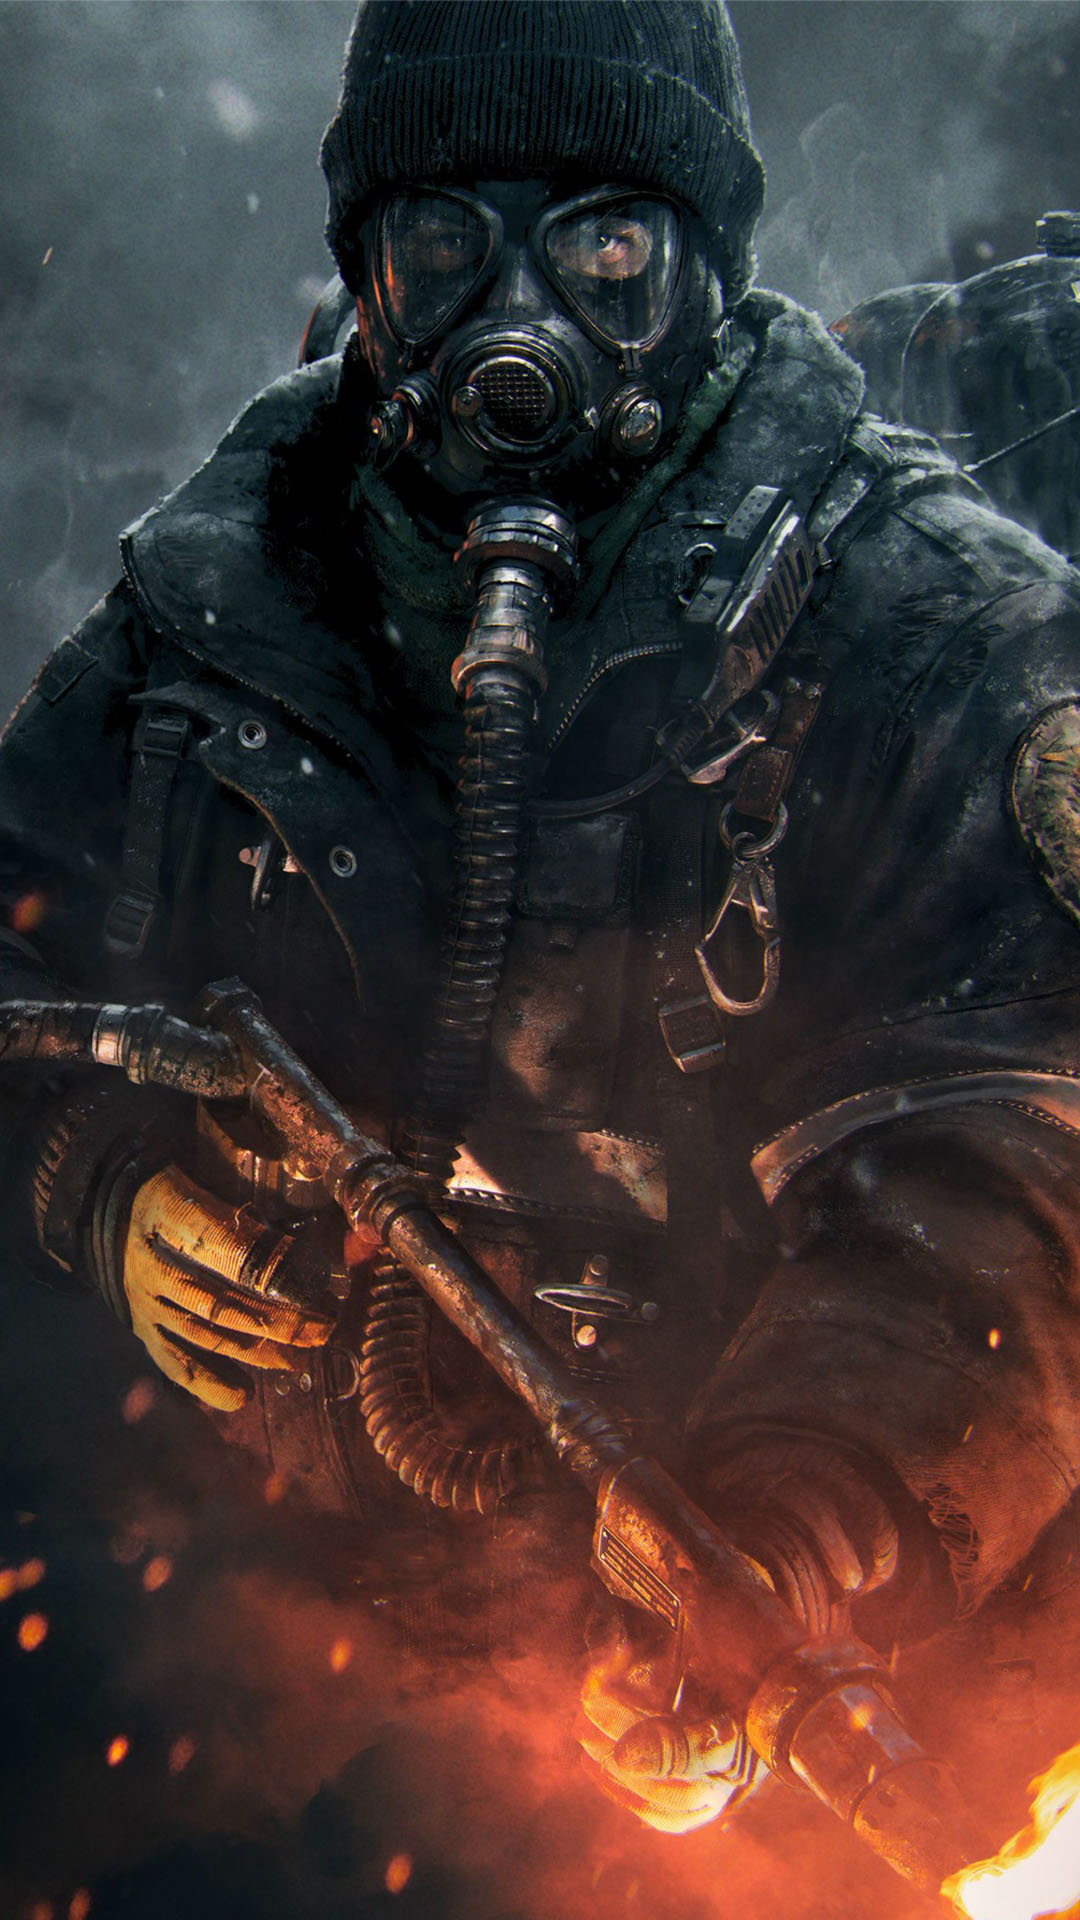 Tom Clancys The Division iPhone 6 6 Plus and iPhone 54 Wallpapers 1080x1920